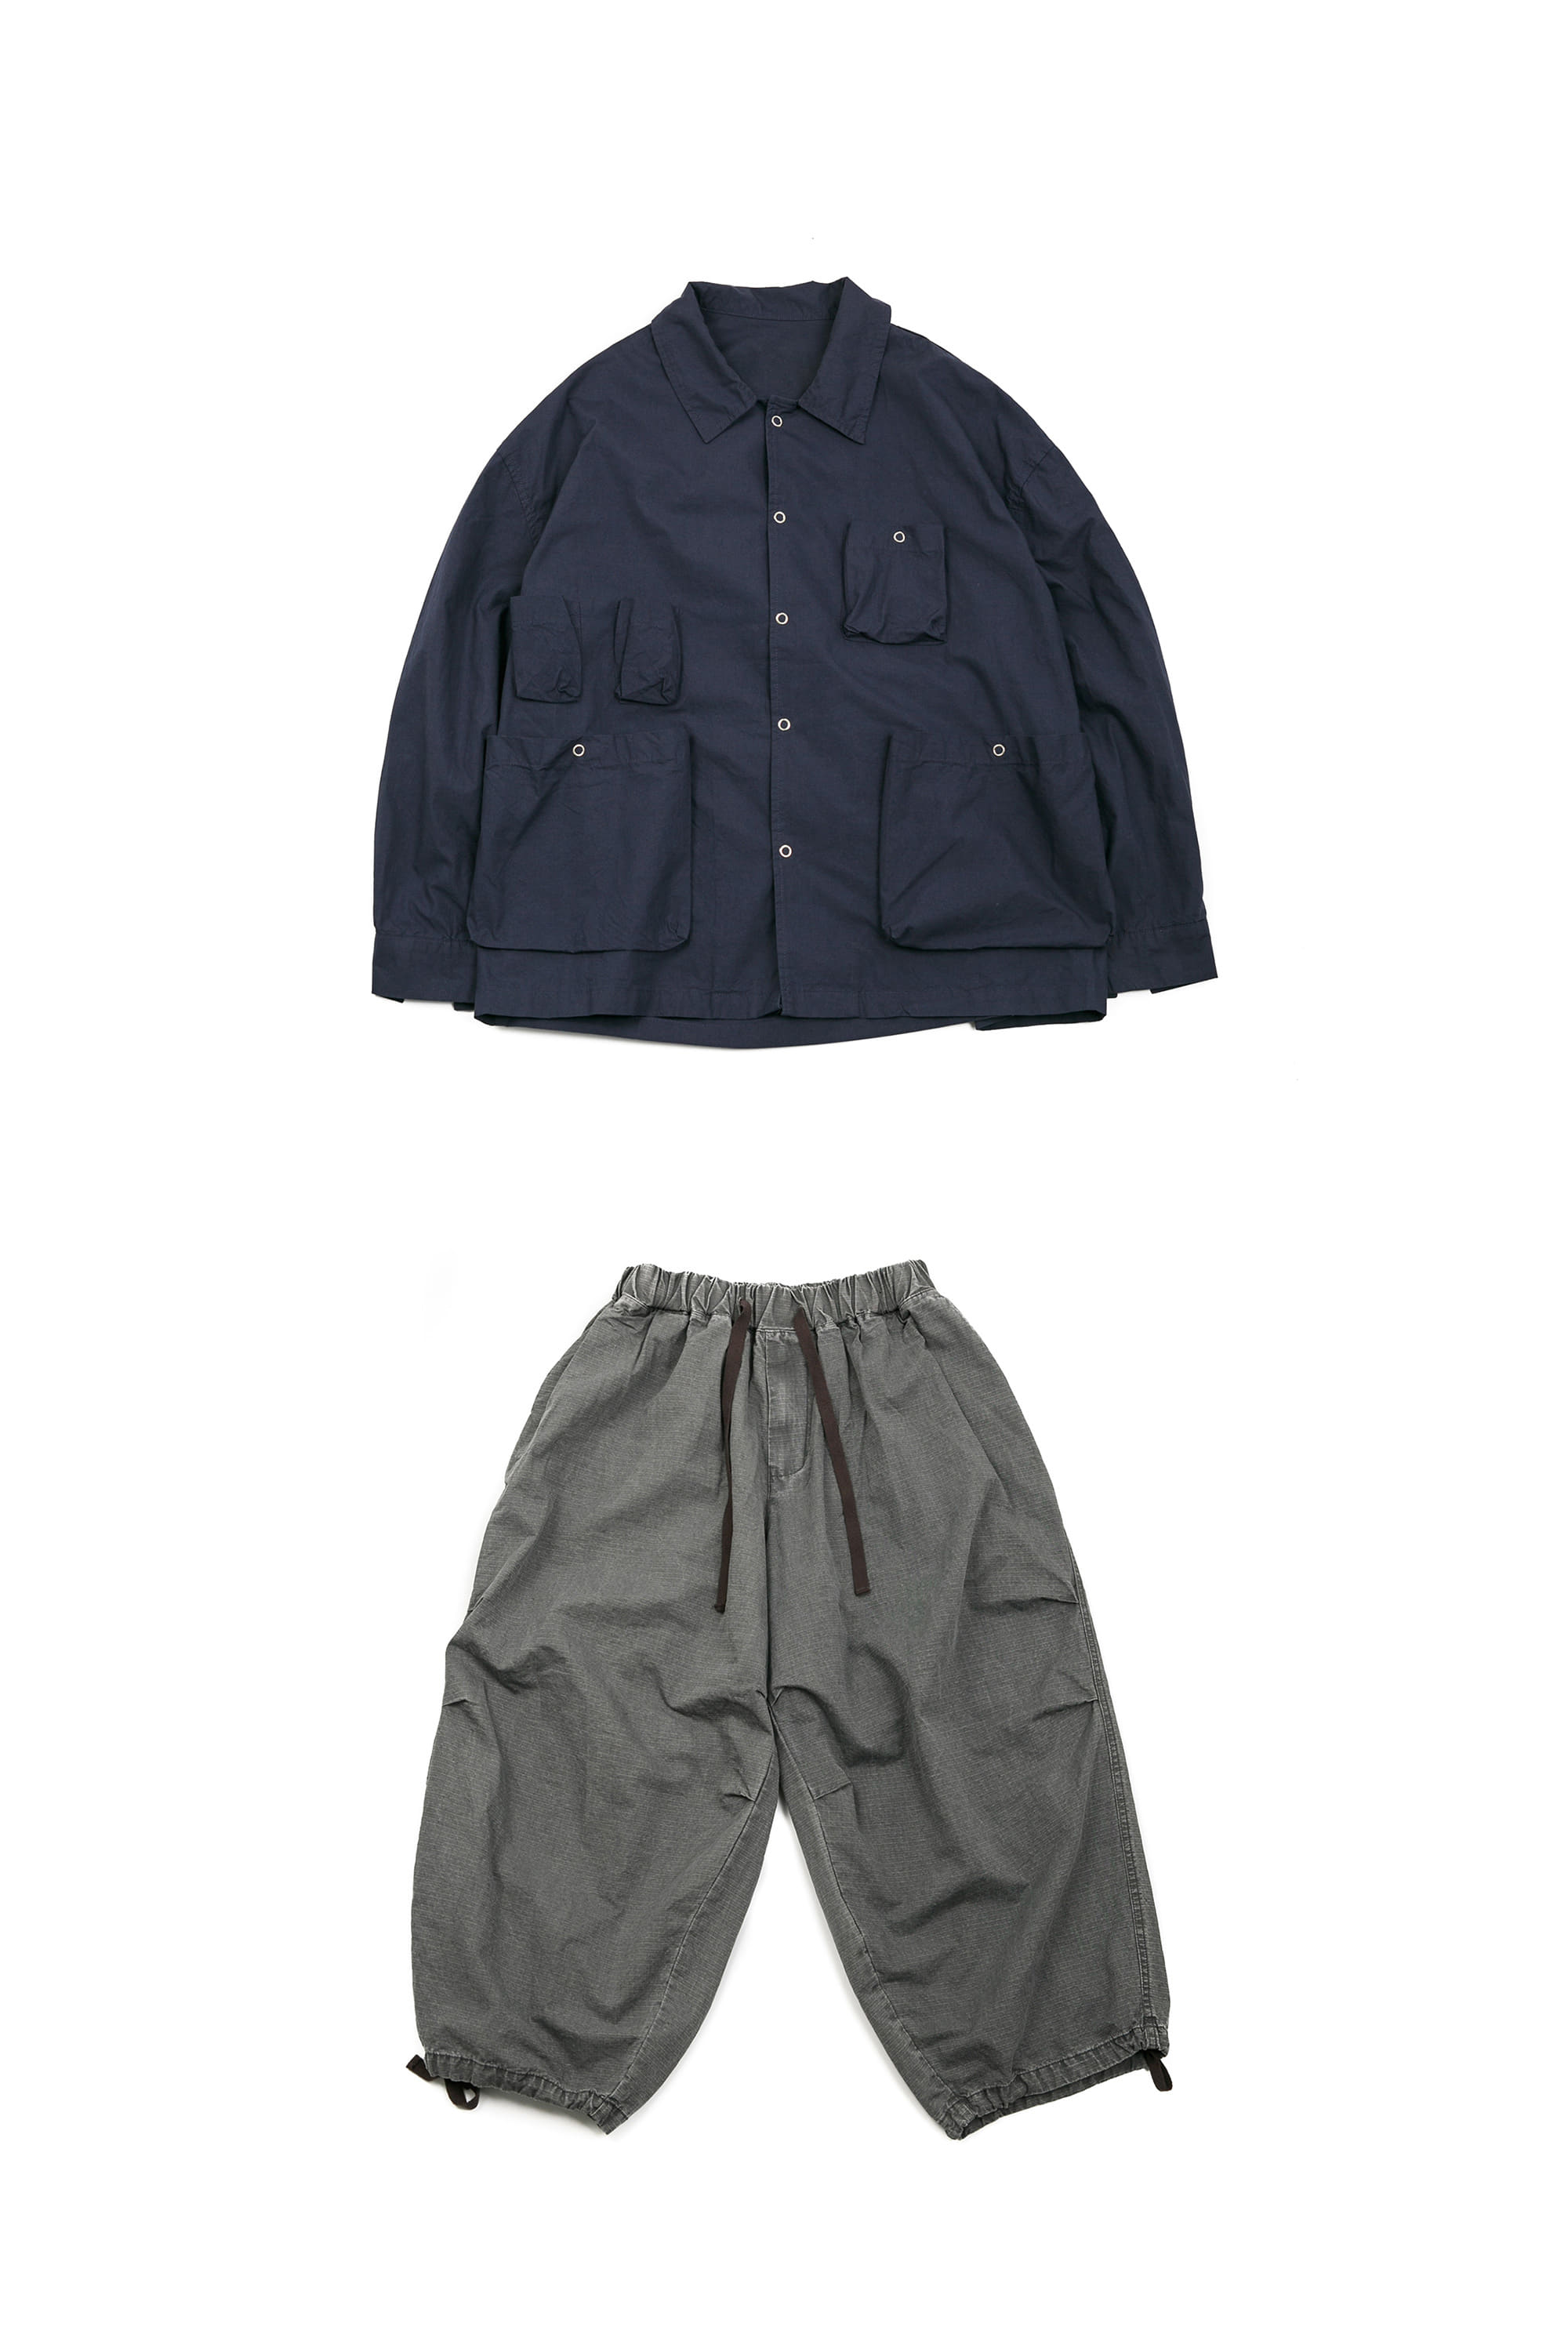 Ring Utility Jacket - Navy & Rib Army Balloon Pants - Grey